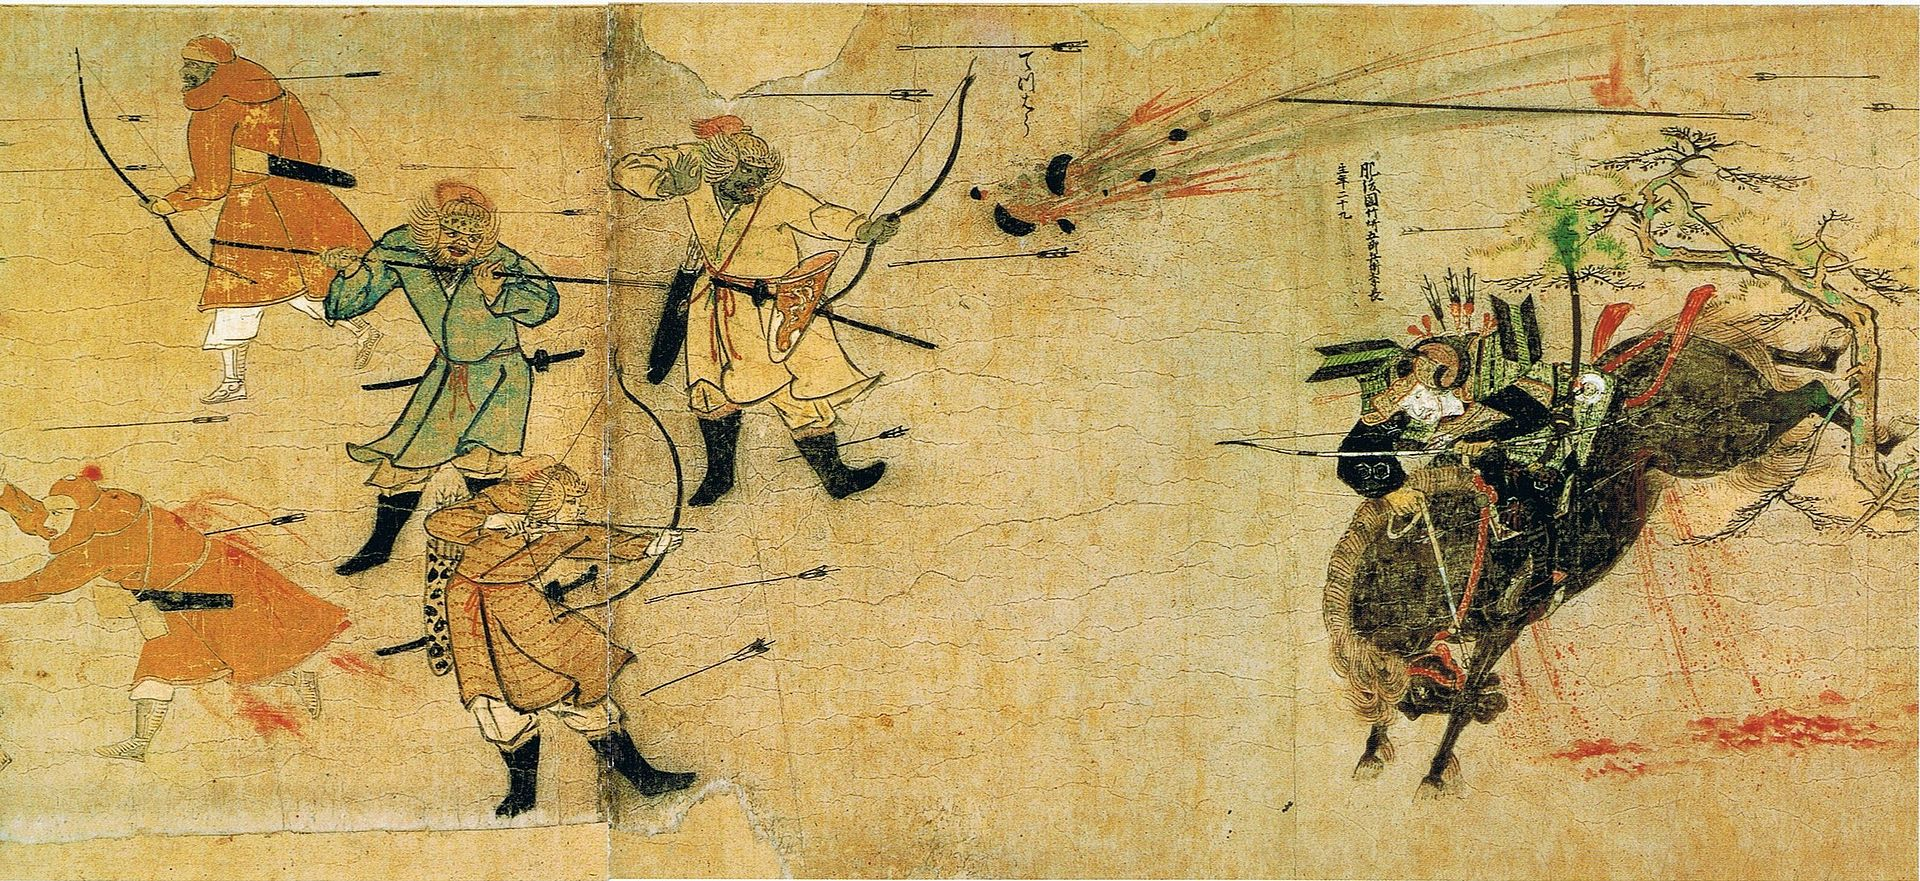 Samurai, facing Mongol arrows and bombs.